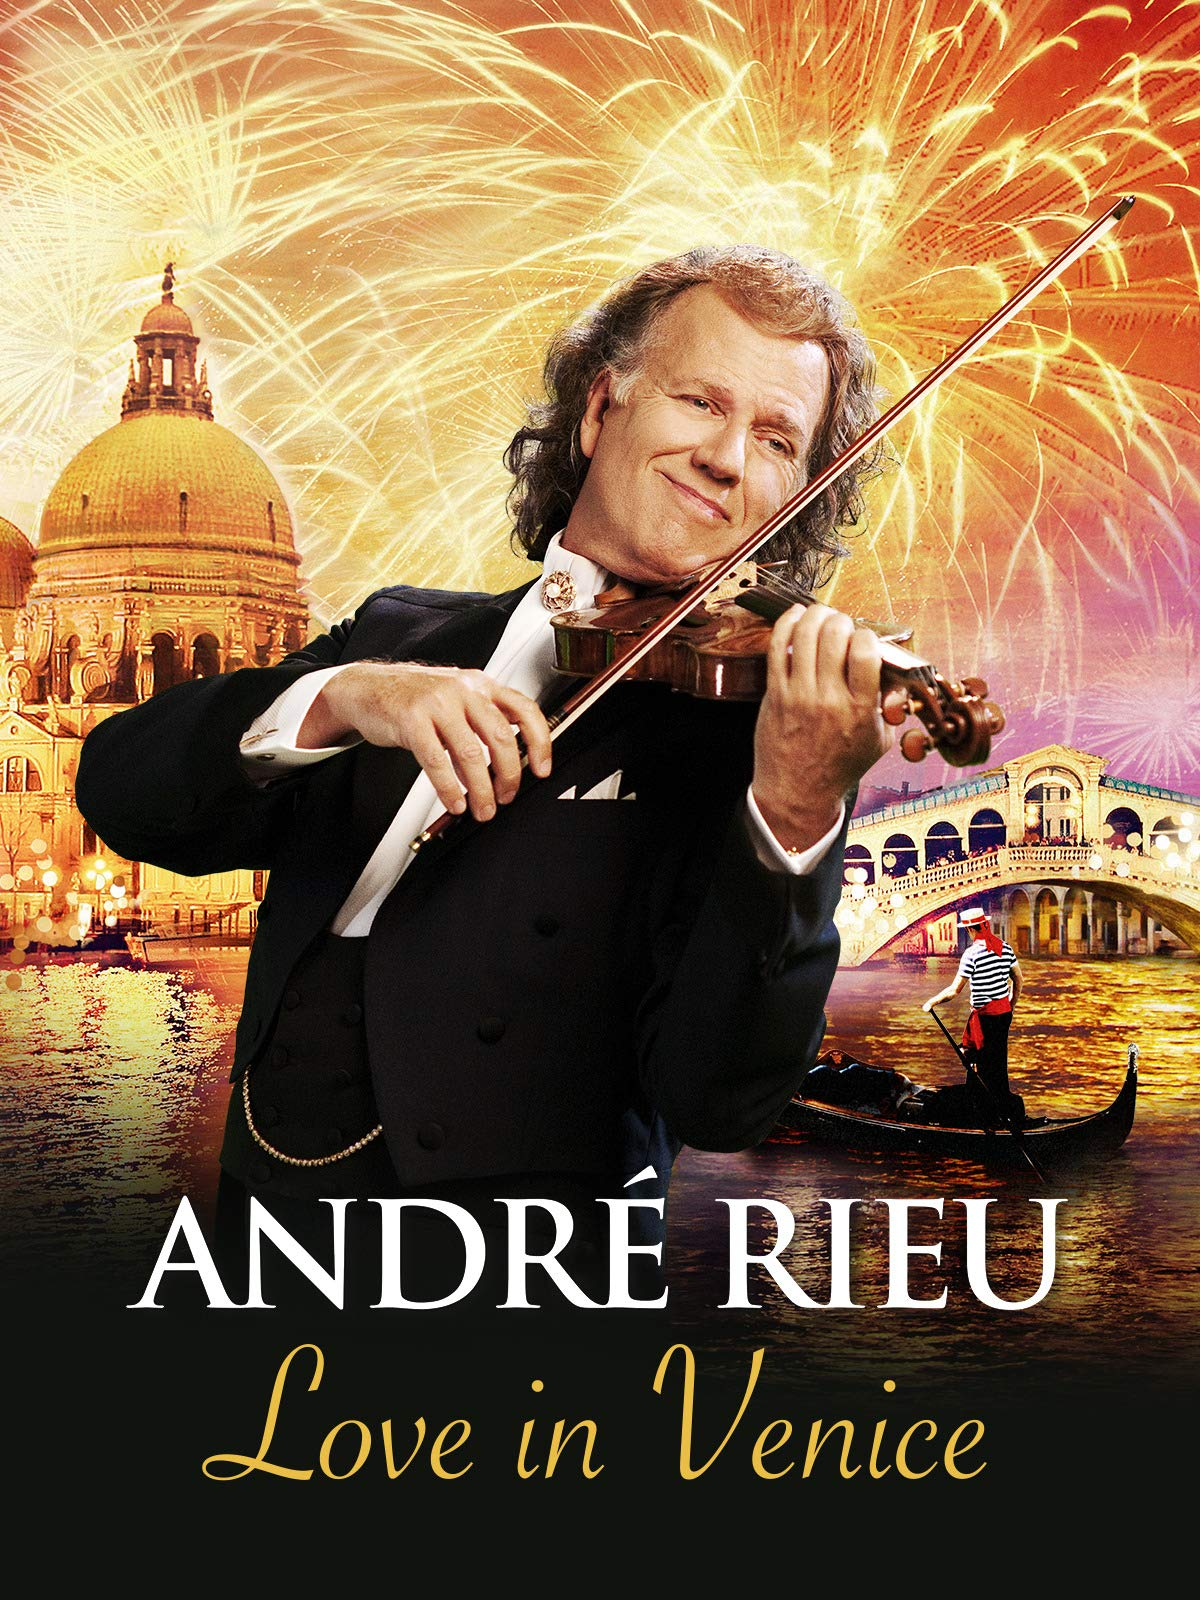 André Rieu And His Johann Strauss Orchestra - Love In Venice on Amazon Prime Instant Video UK